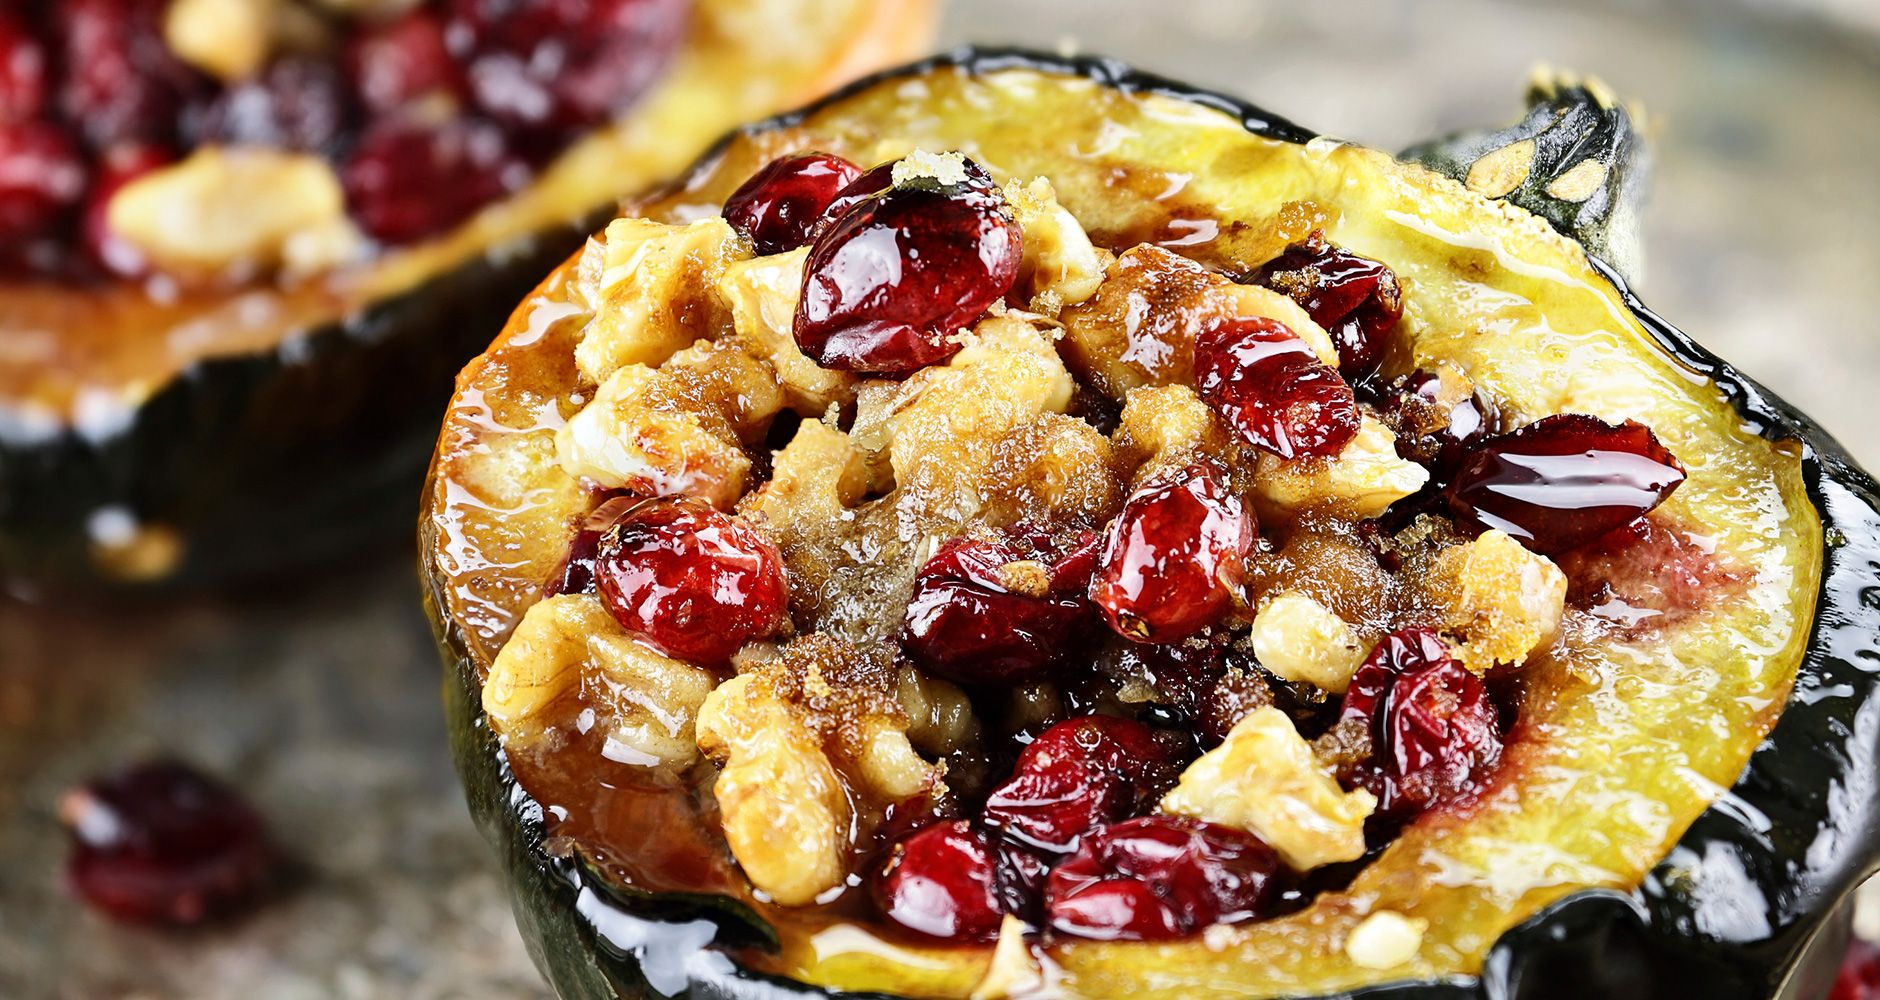 Baked Stuffed Acorn Squash With Cranberry Stuffing Recipe Food